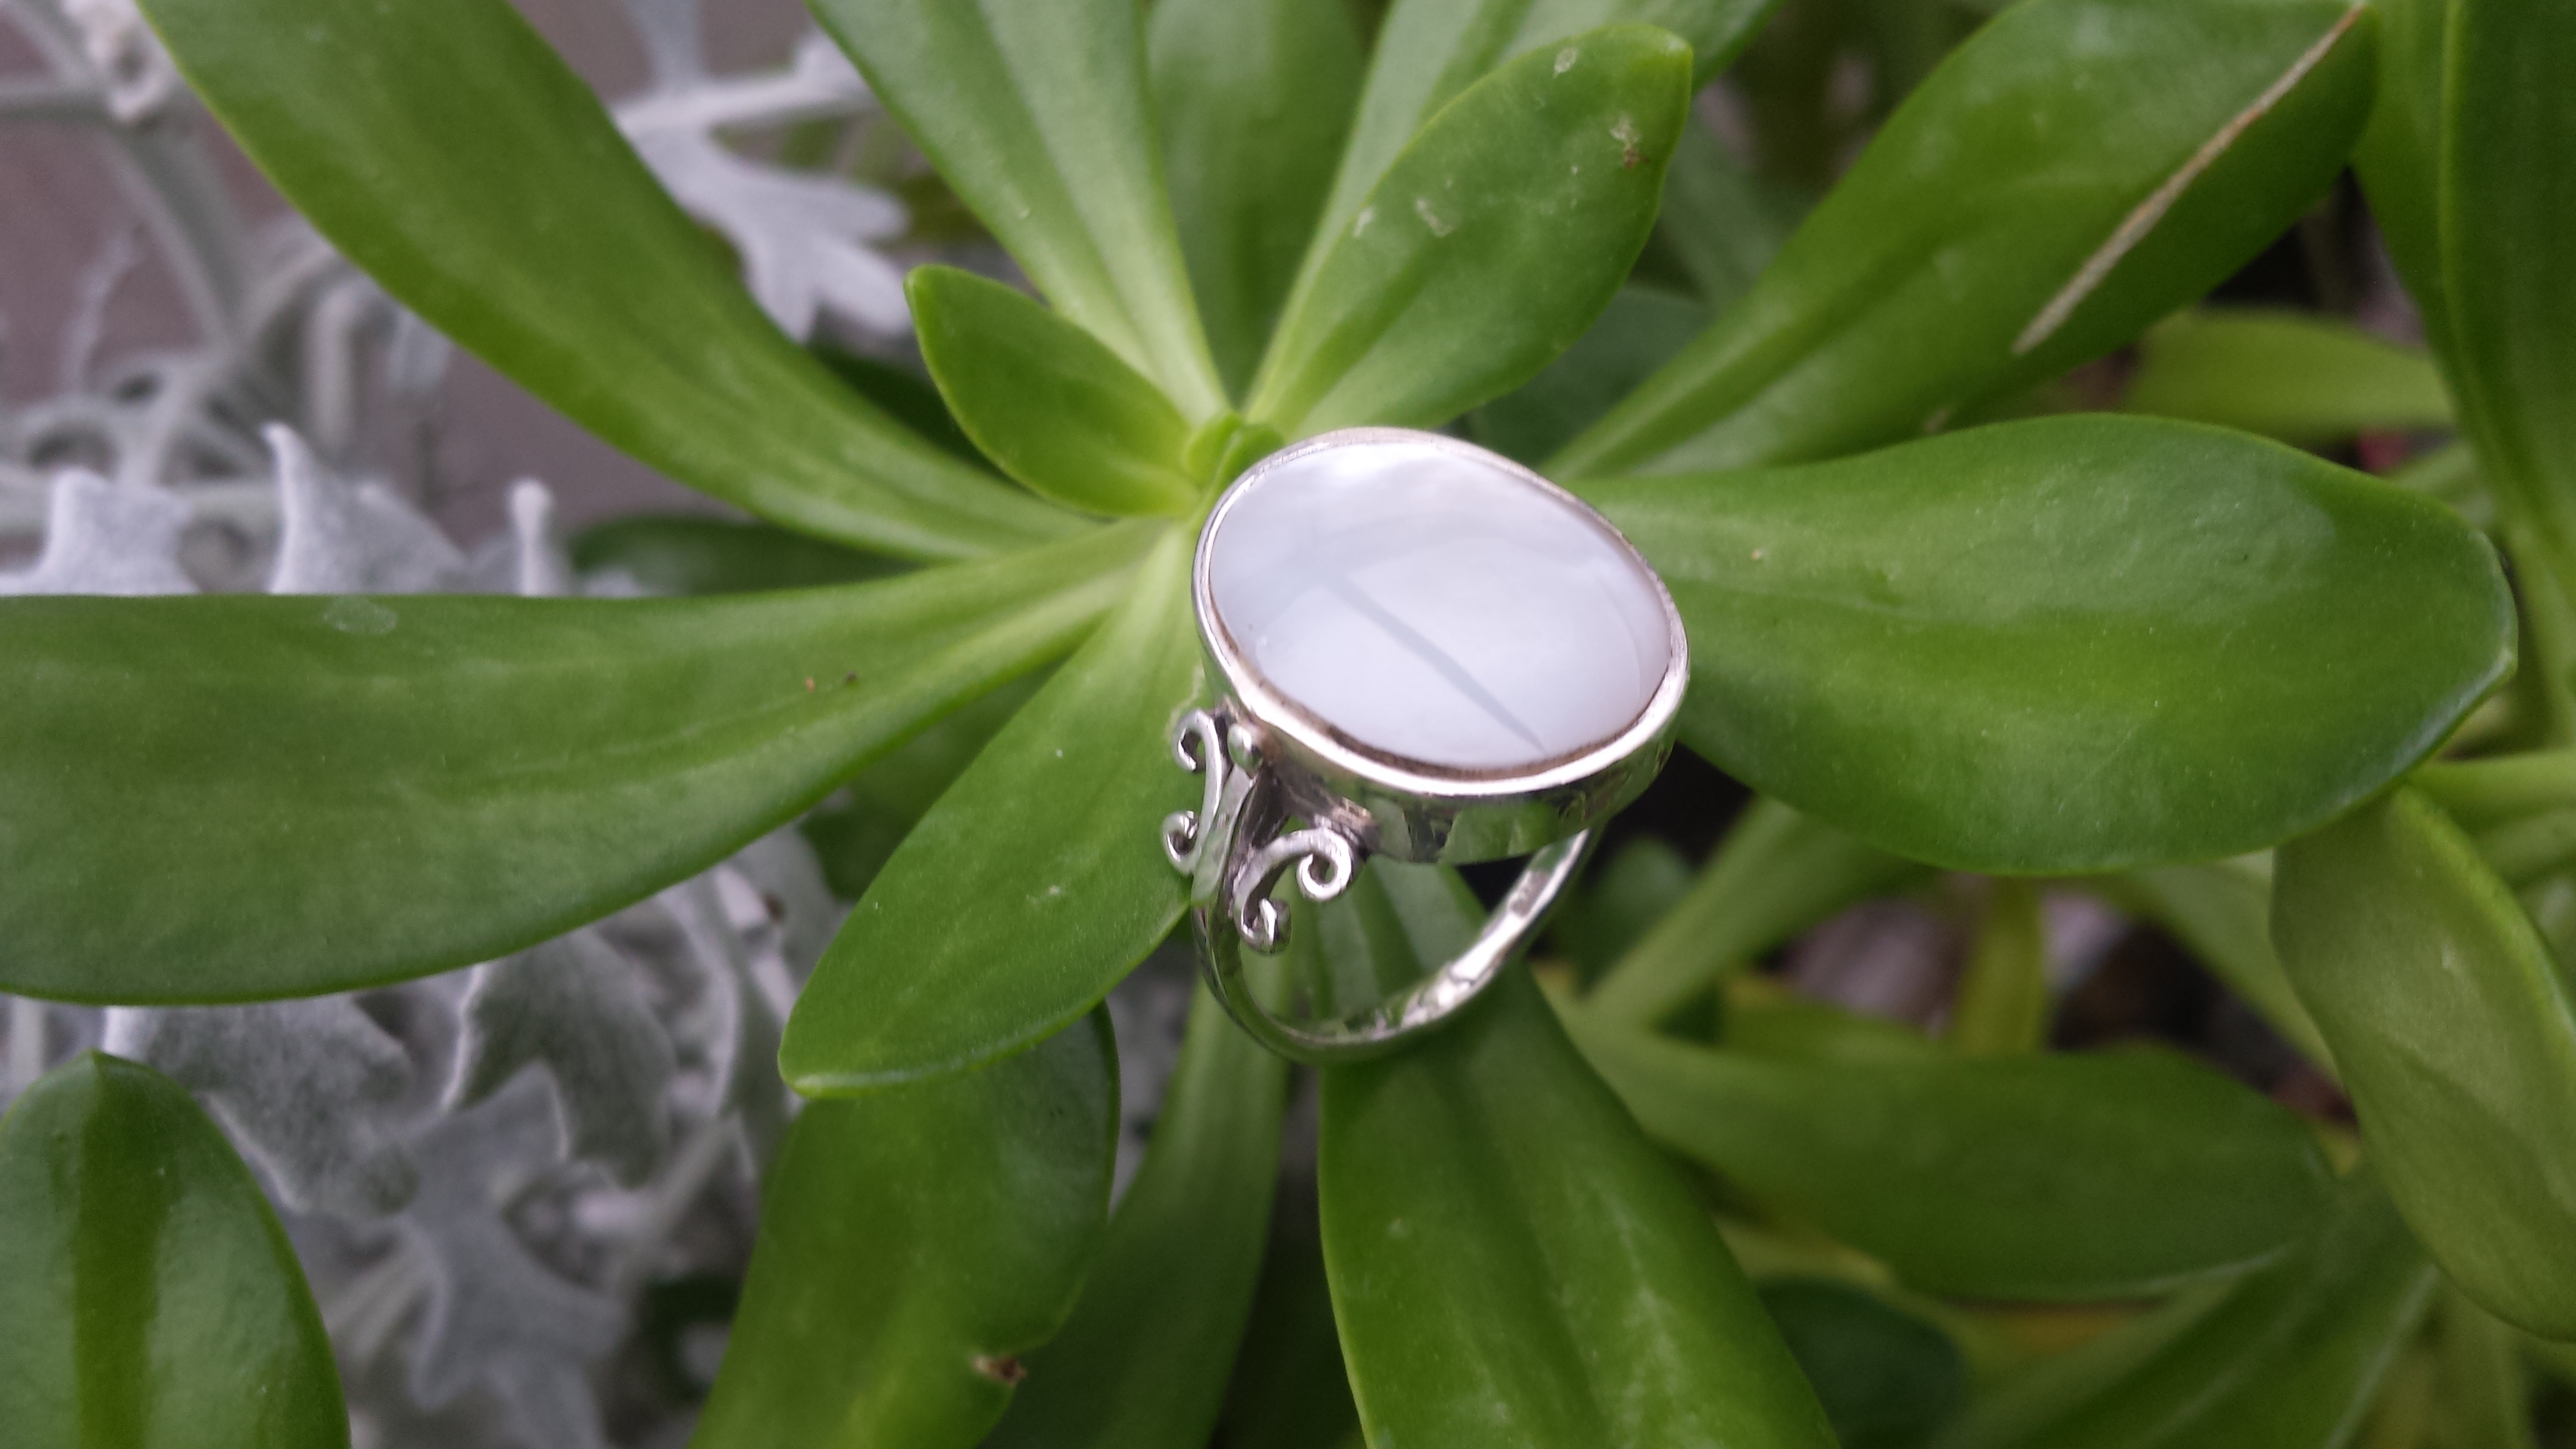 OVAL MOONSTONE RING WITH 925 STERLING SILVER 6 G